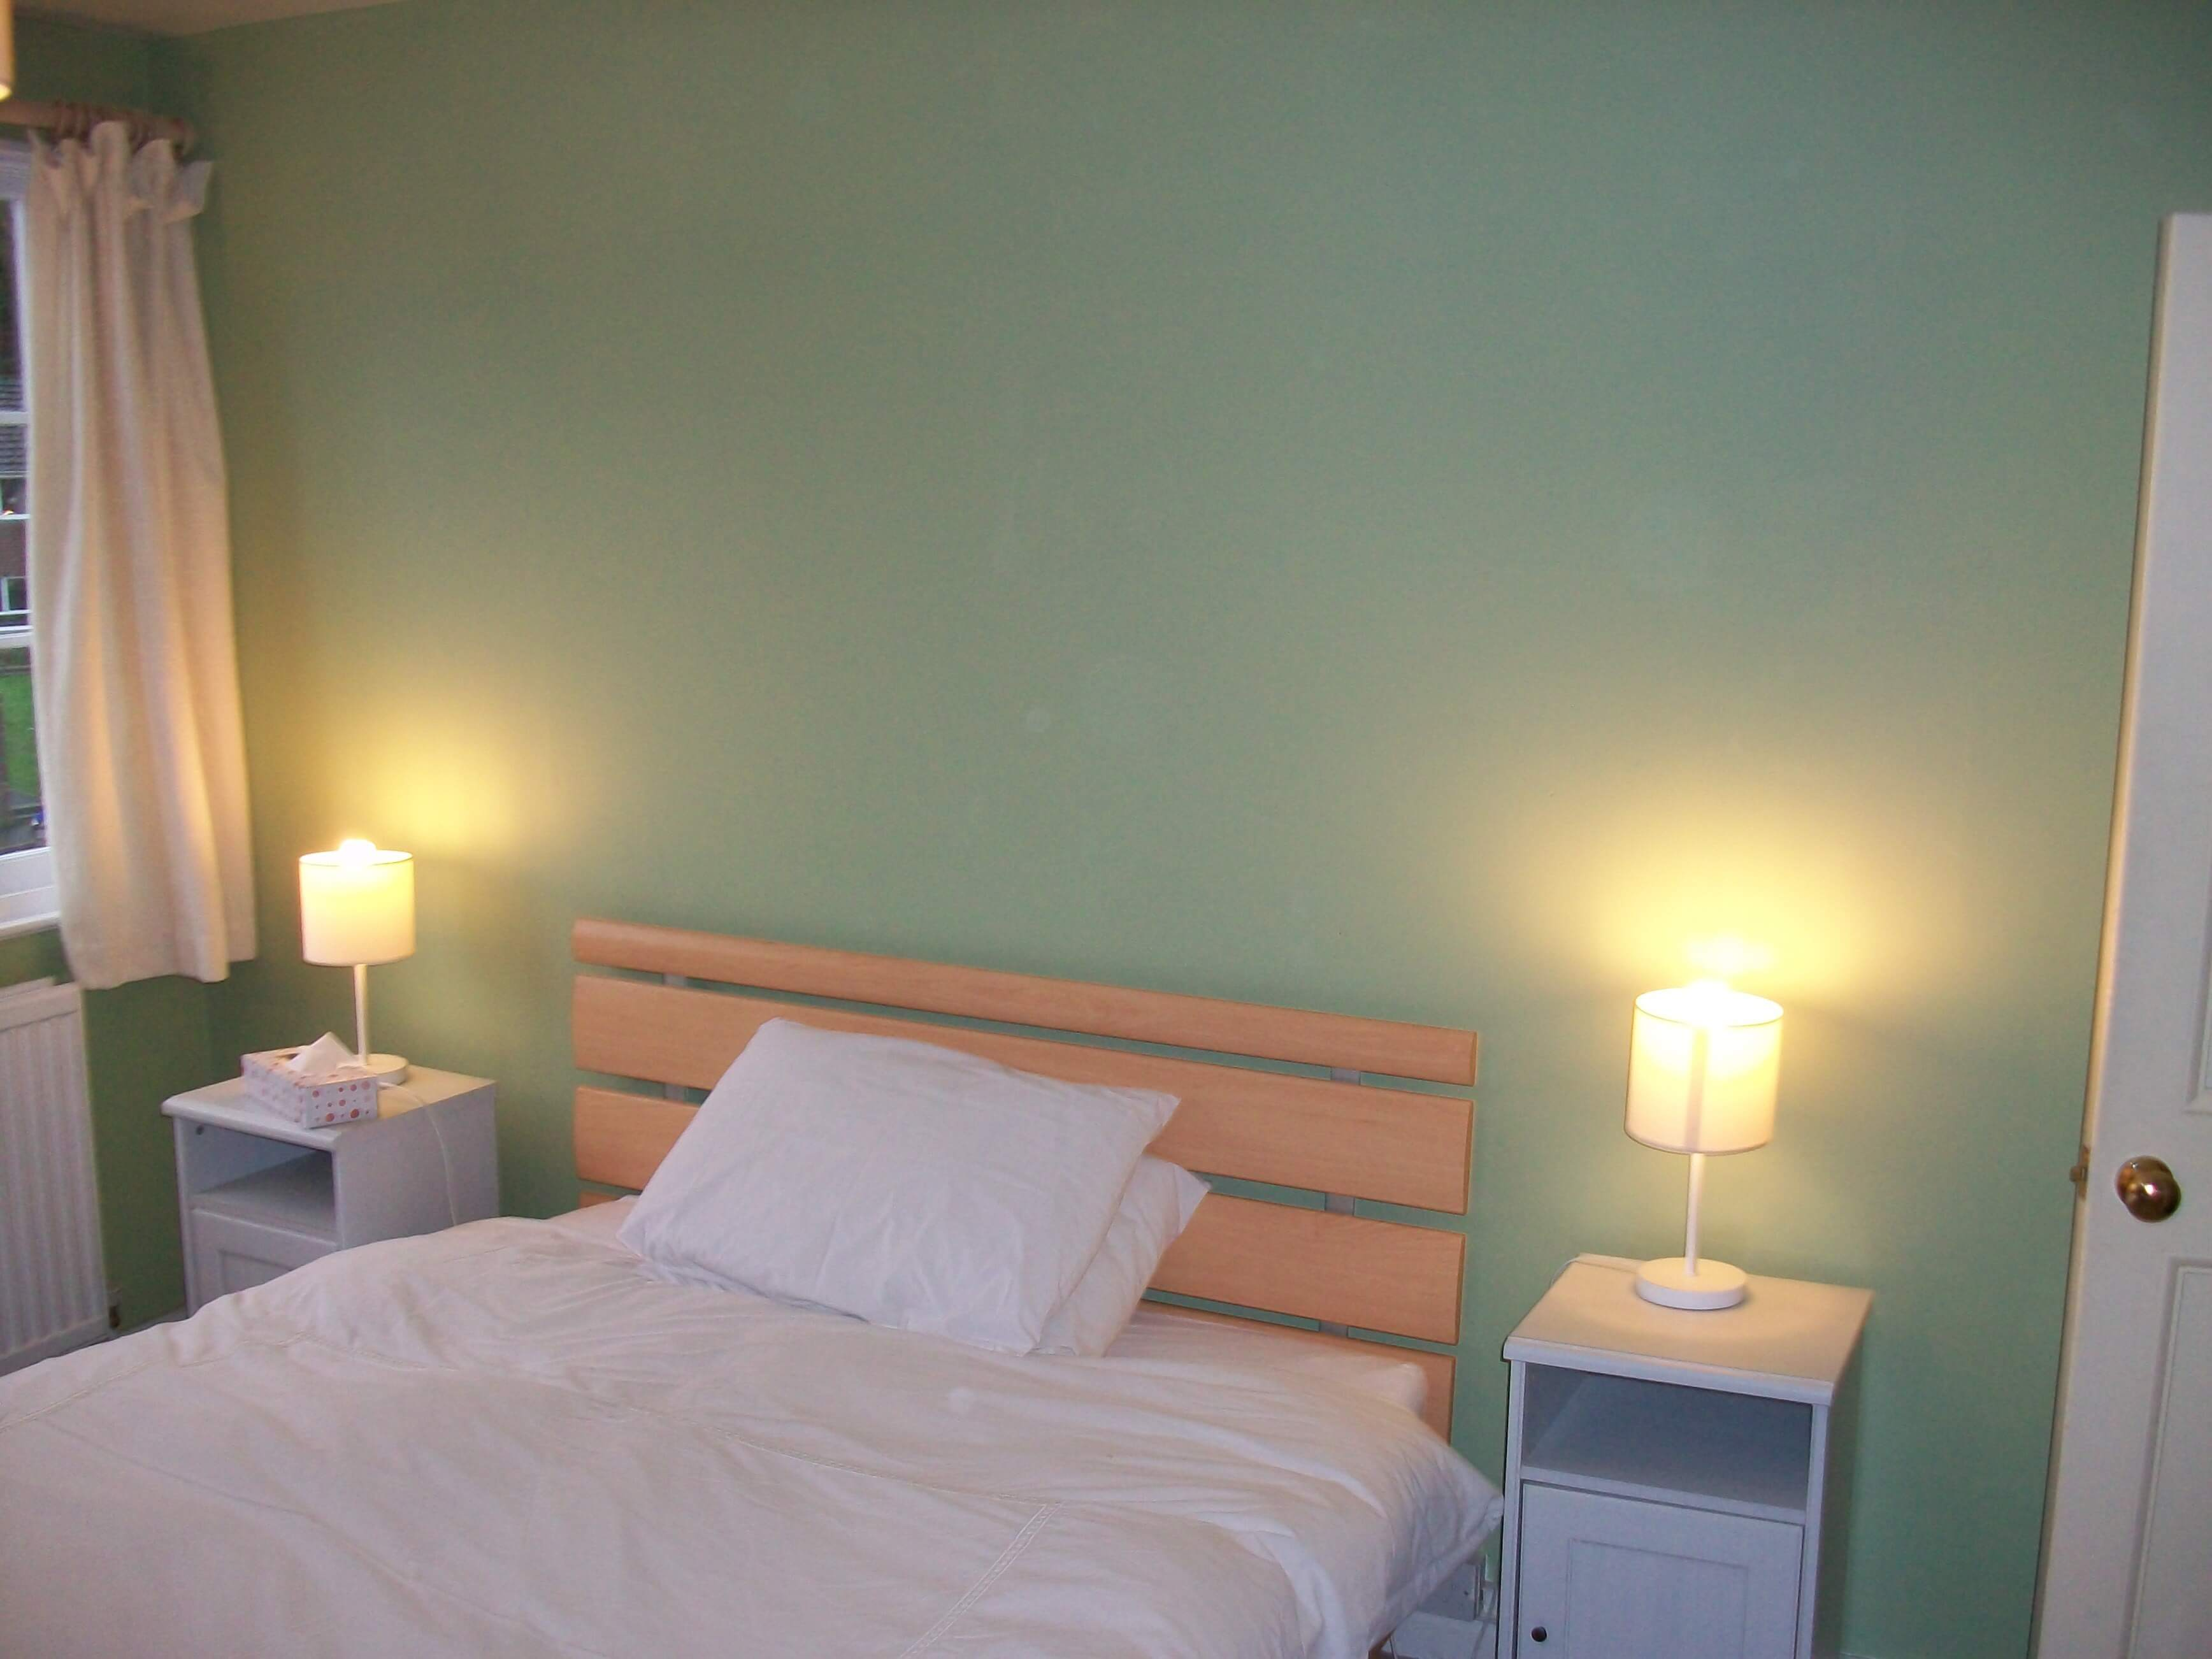 No 44 Bed and Breakfast - Image 4 - UK Tourism Online